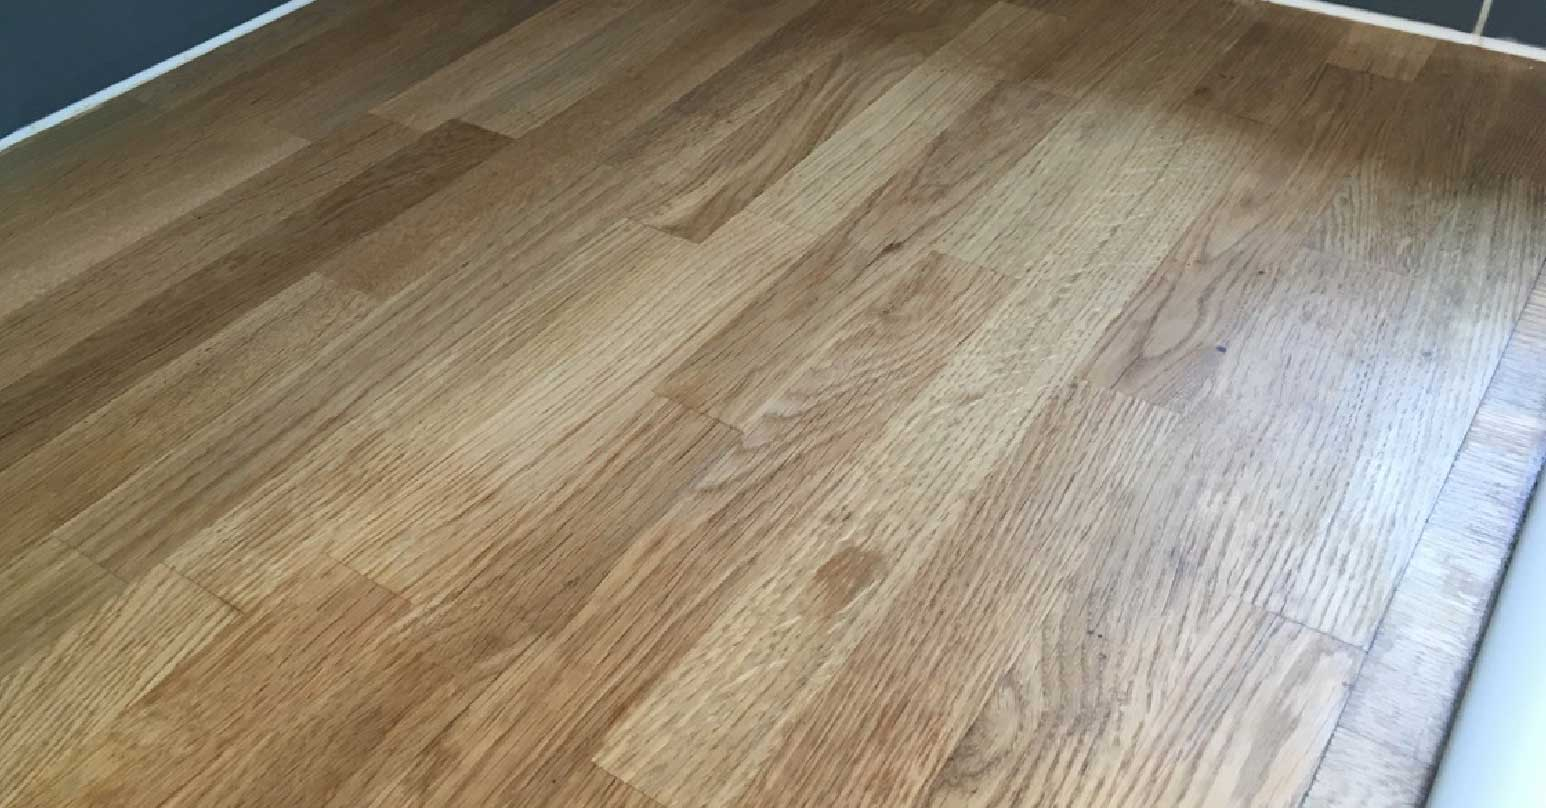 Water stained wooden worktop - After repair